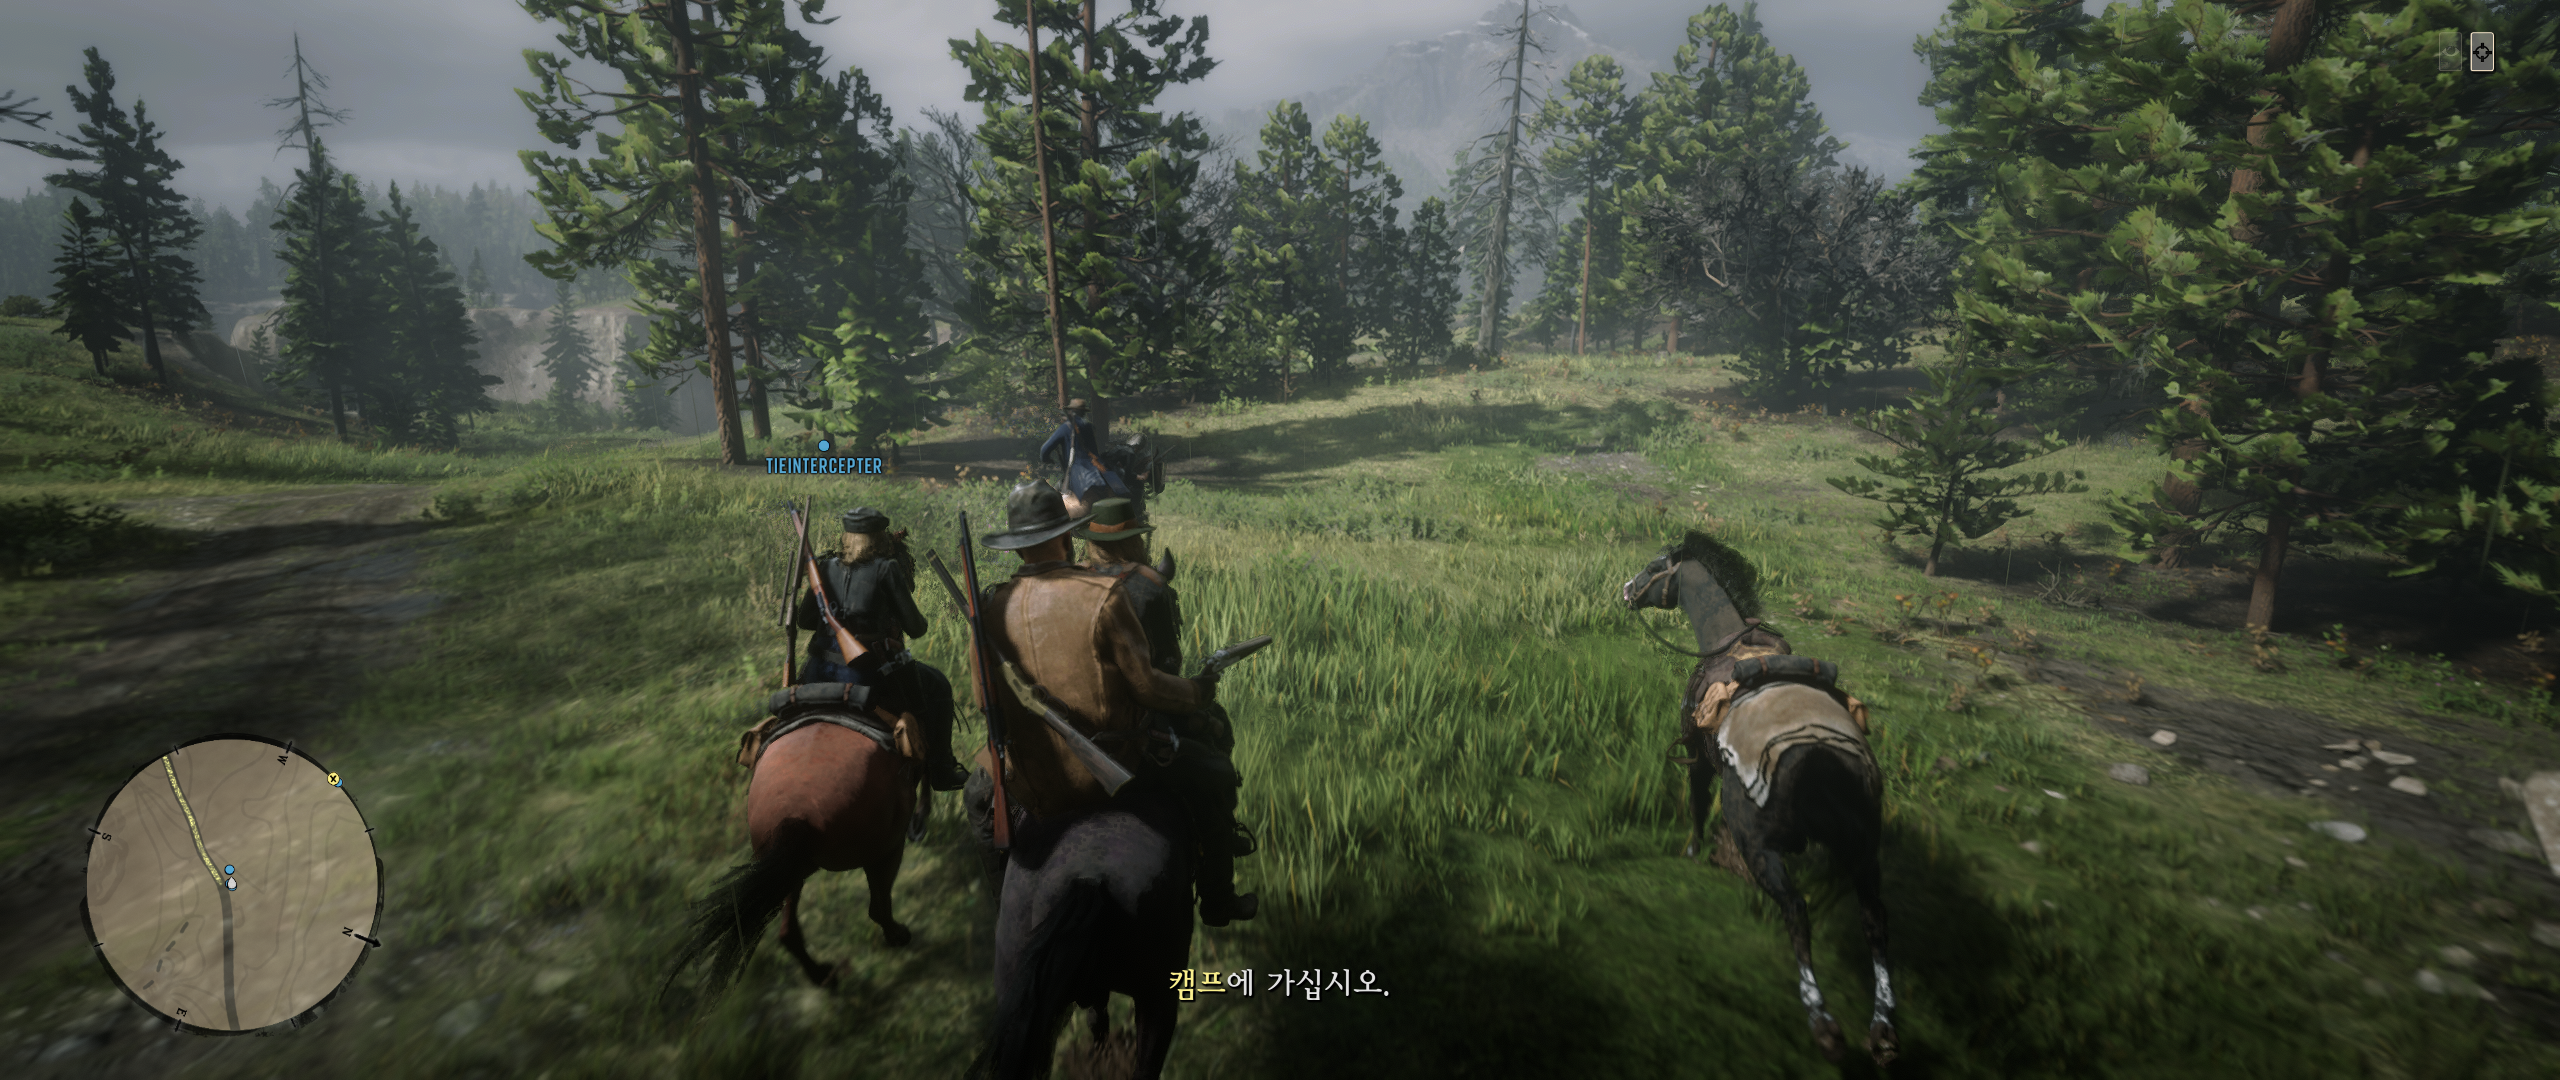 Red_Dead_Redemption_2_Screenshot_2019.12.03_-_21.21.57.88